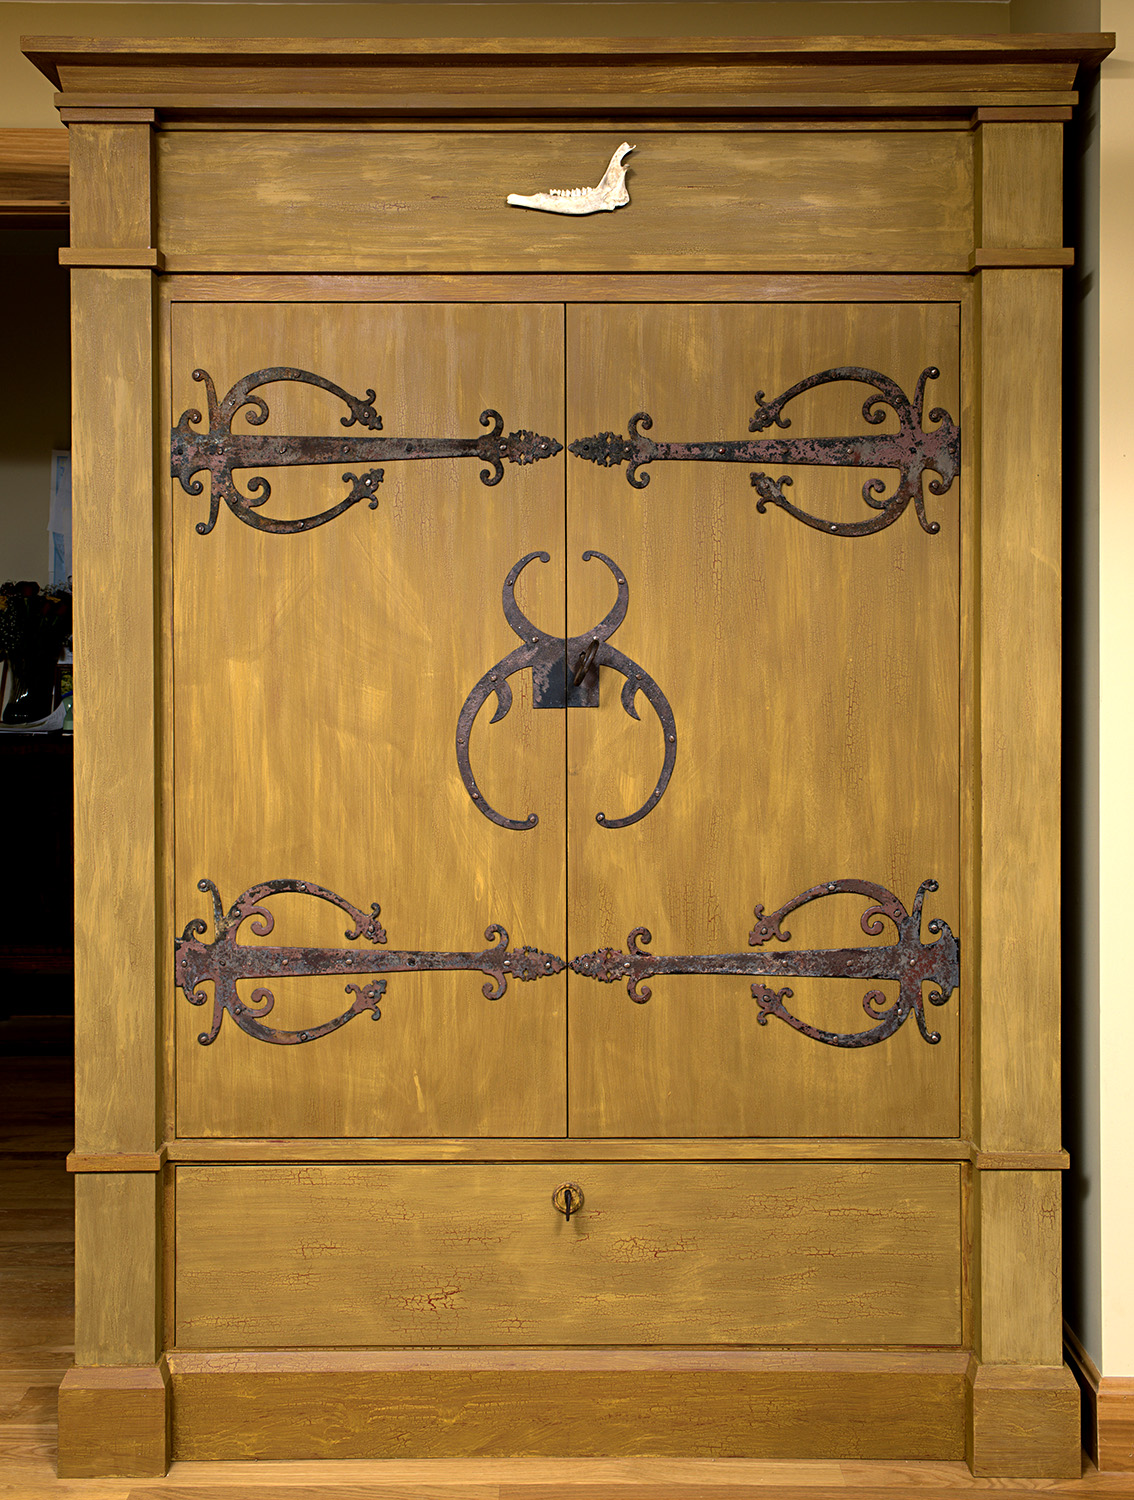 Barn door strap hinges - A Turn Of The Century Scandinavian Inspired Design This Armoire Has Retractable Doors With Decorative Strap Hinge Hardware Salvaged From An Old Barn In